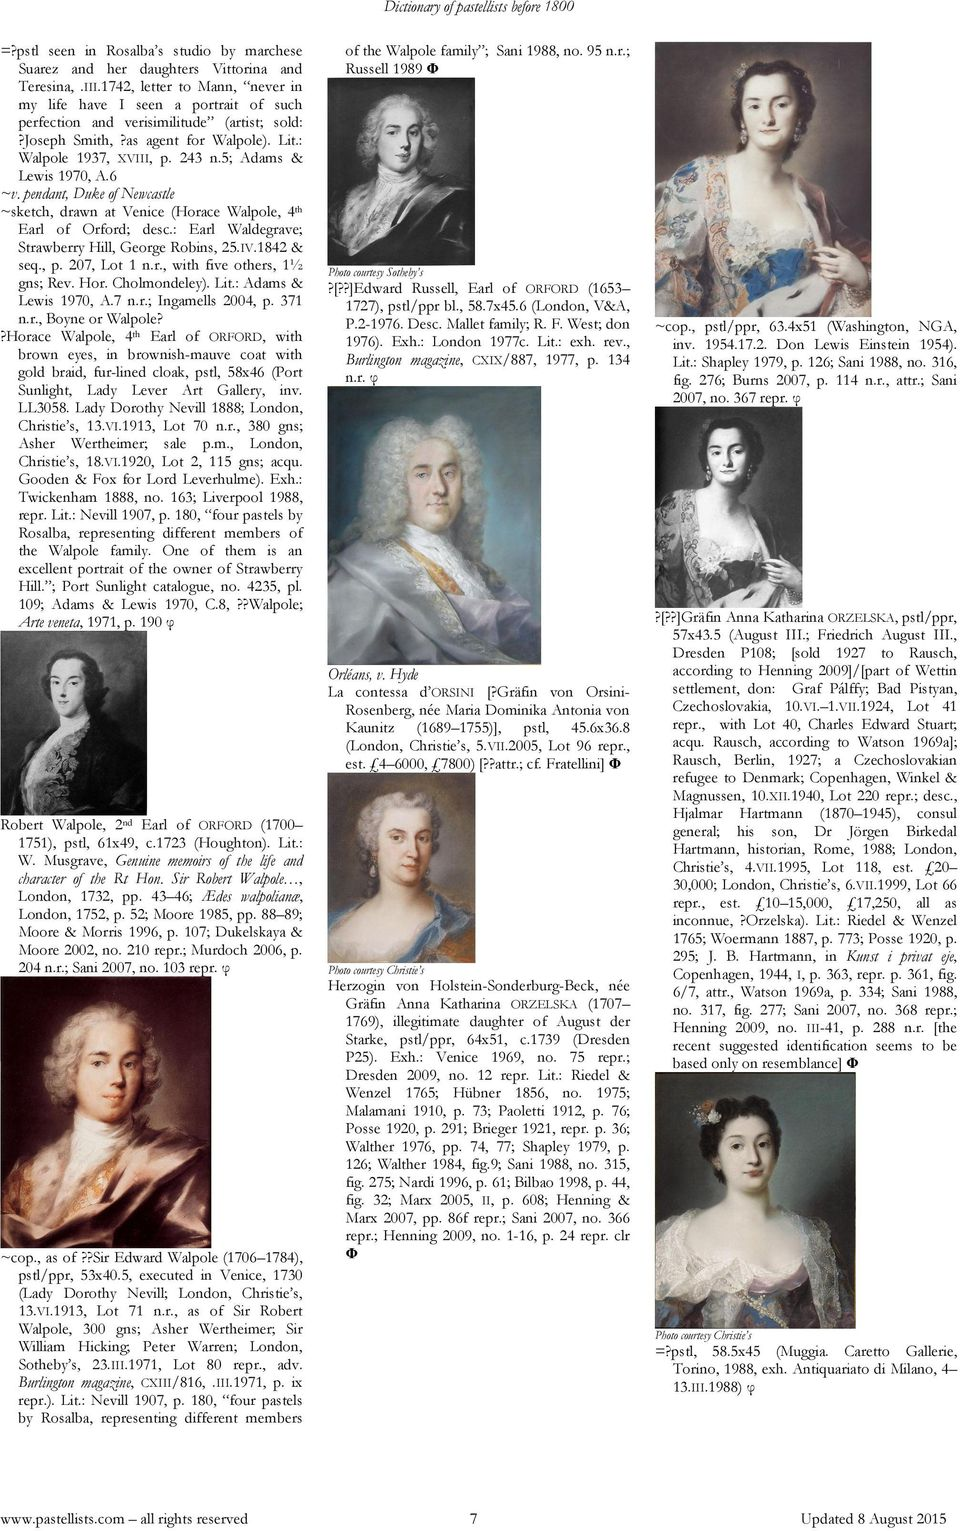 5; Adams & Lewis 1970, A.6 ~v. pendant, Duke of Newcastle ~sketch, drawn at Venice (Horace Walpole, 4 th Earl of Orford; desc.: Earl Waldegrave; Strawberry Hill, George Robins, 25.IV.1842 & seq., p.